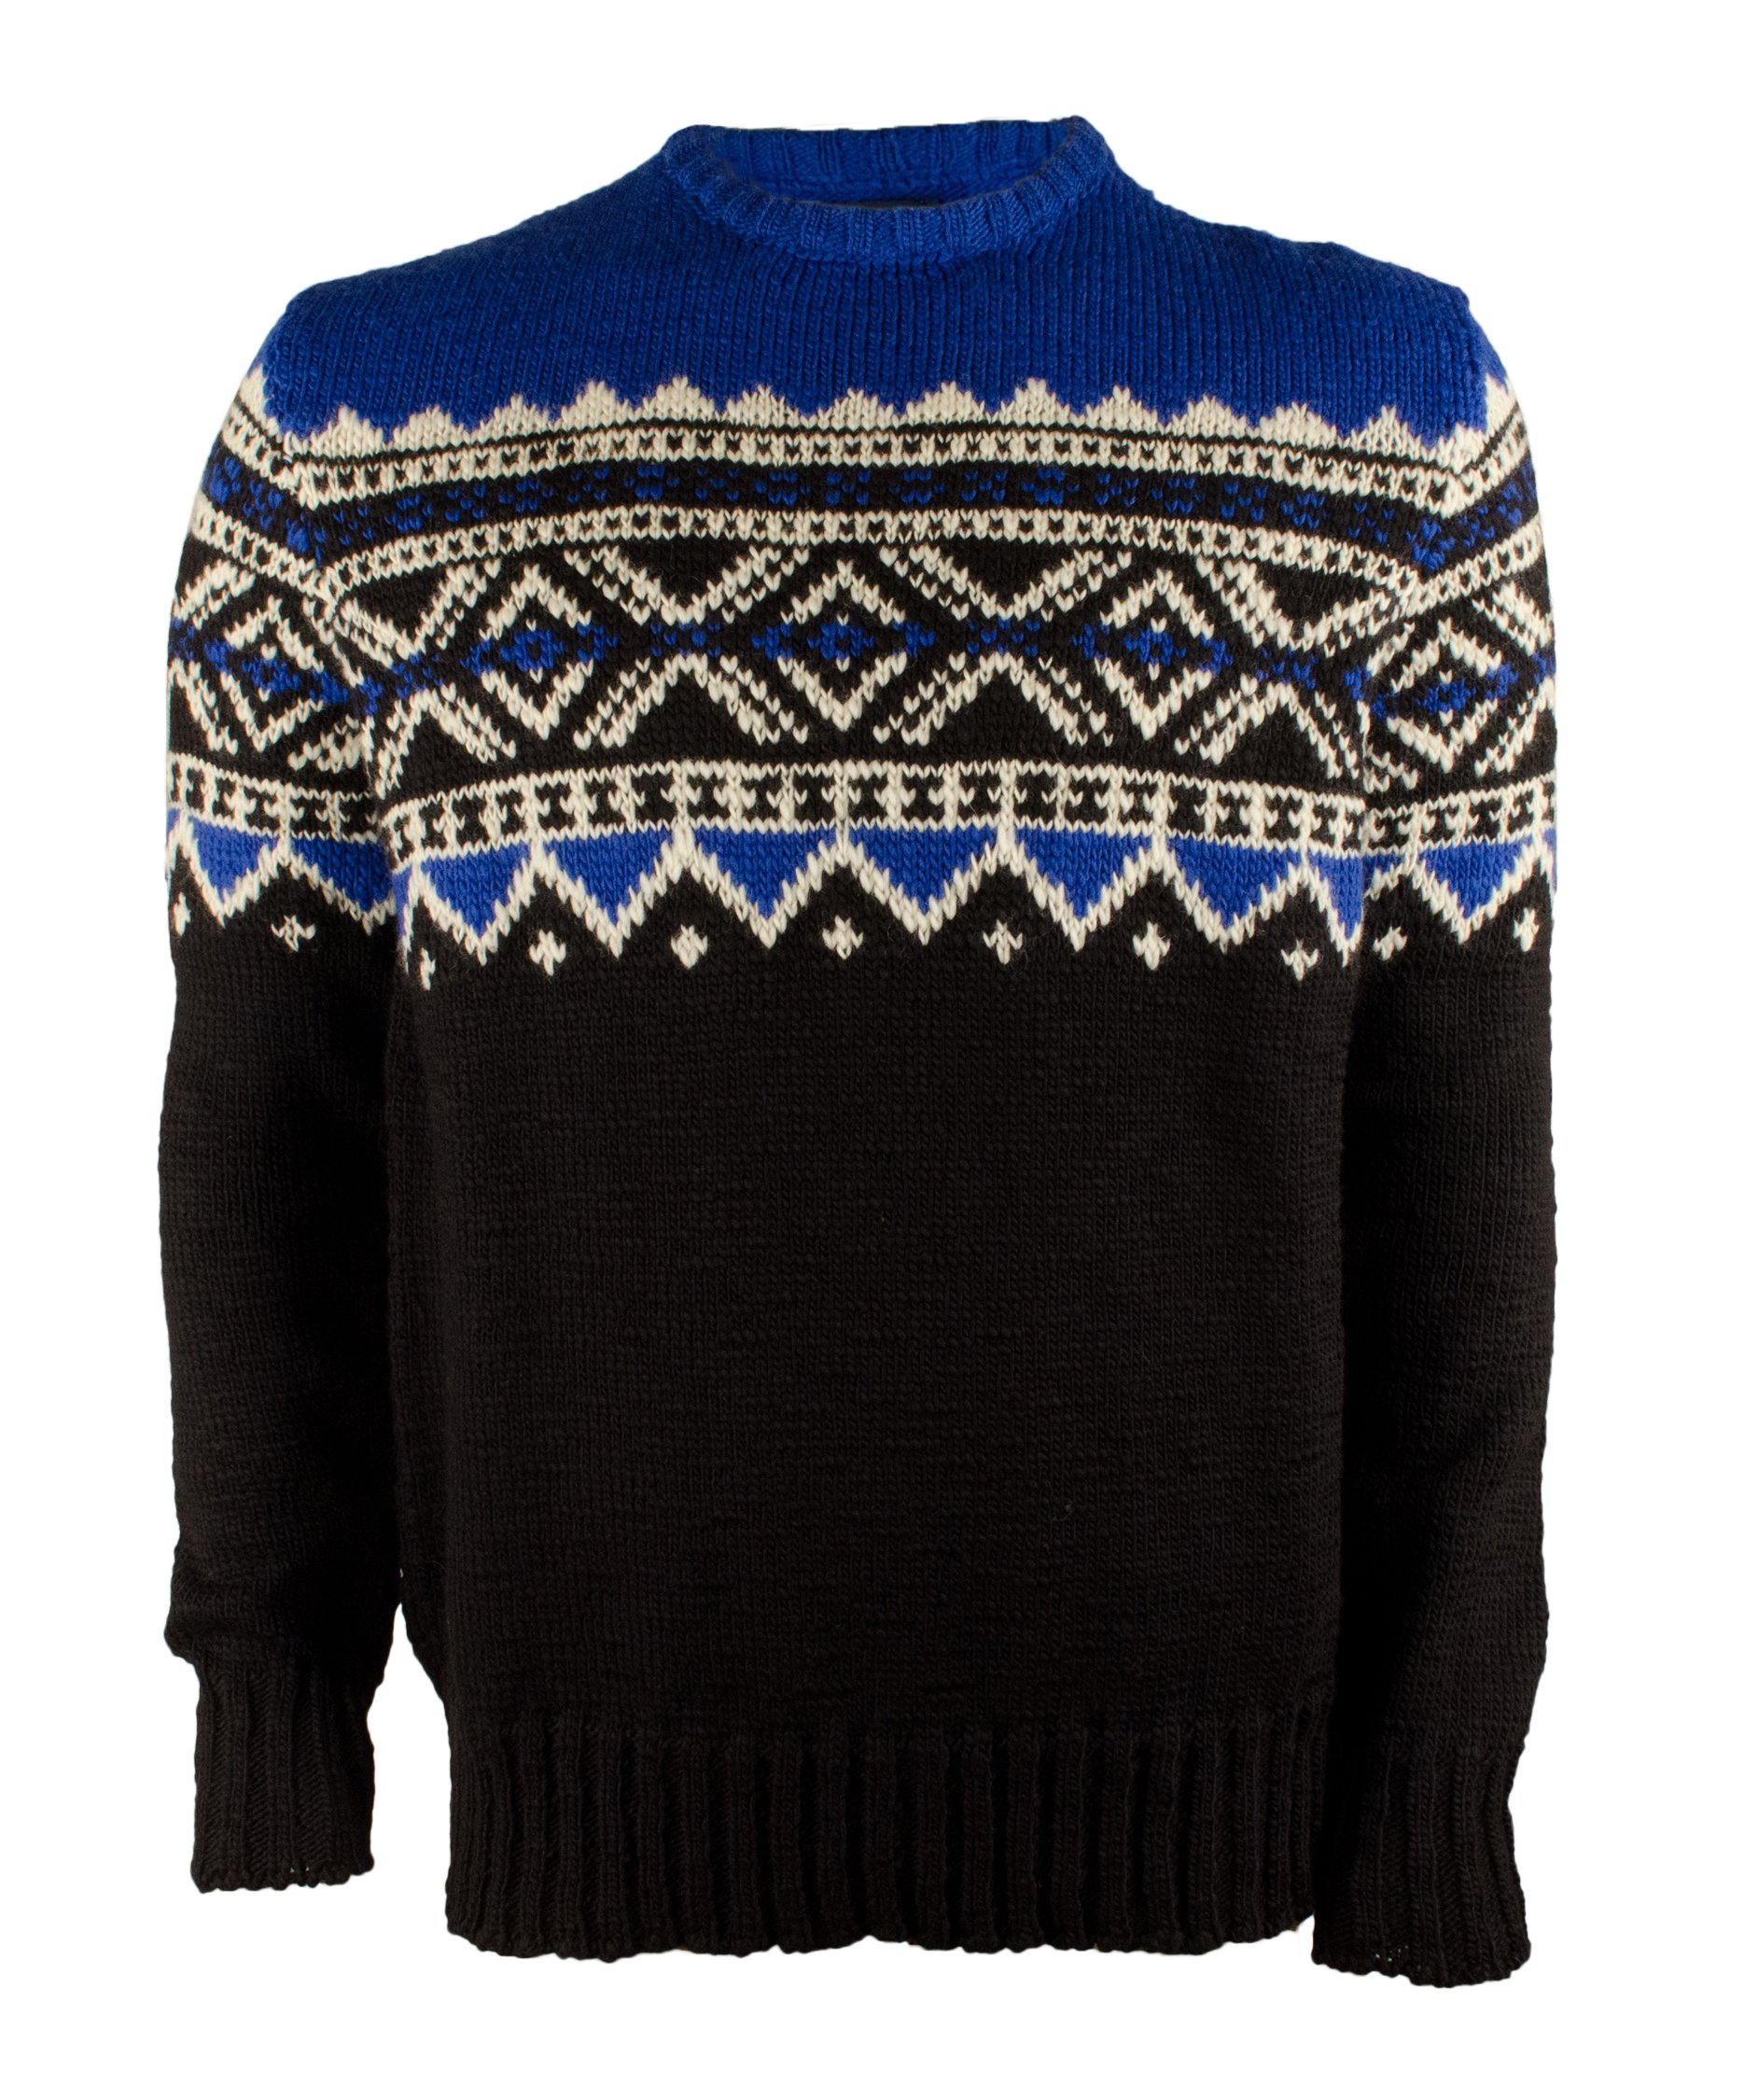 Polo Ralph Lauren Fair Isle Colorblock Mens Medium Sweater Blue M by Polo Ralph Lauren